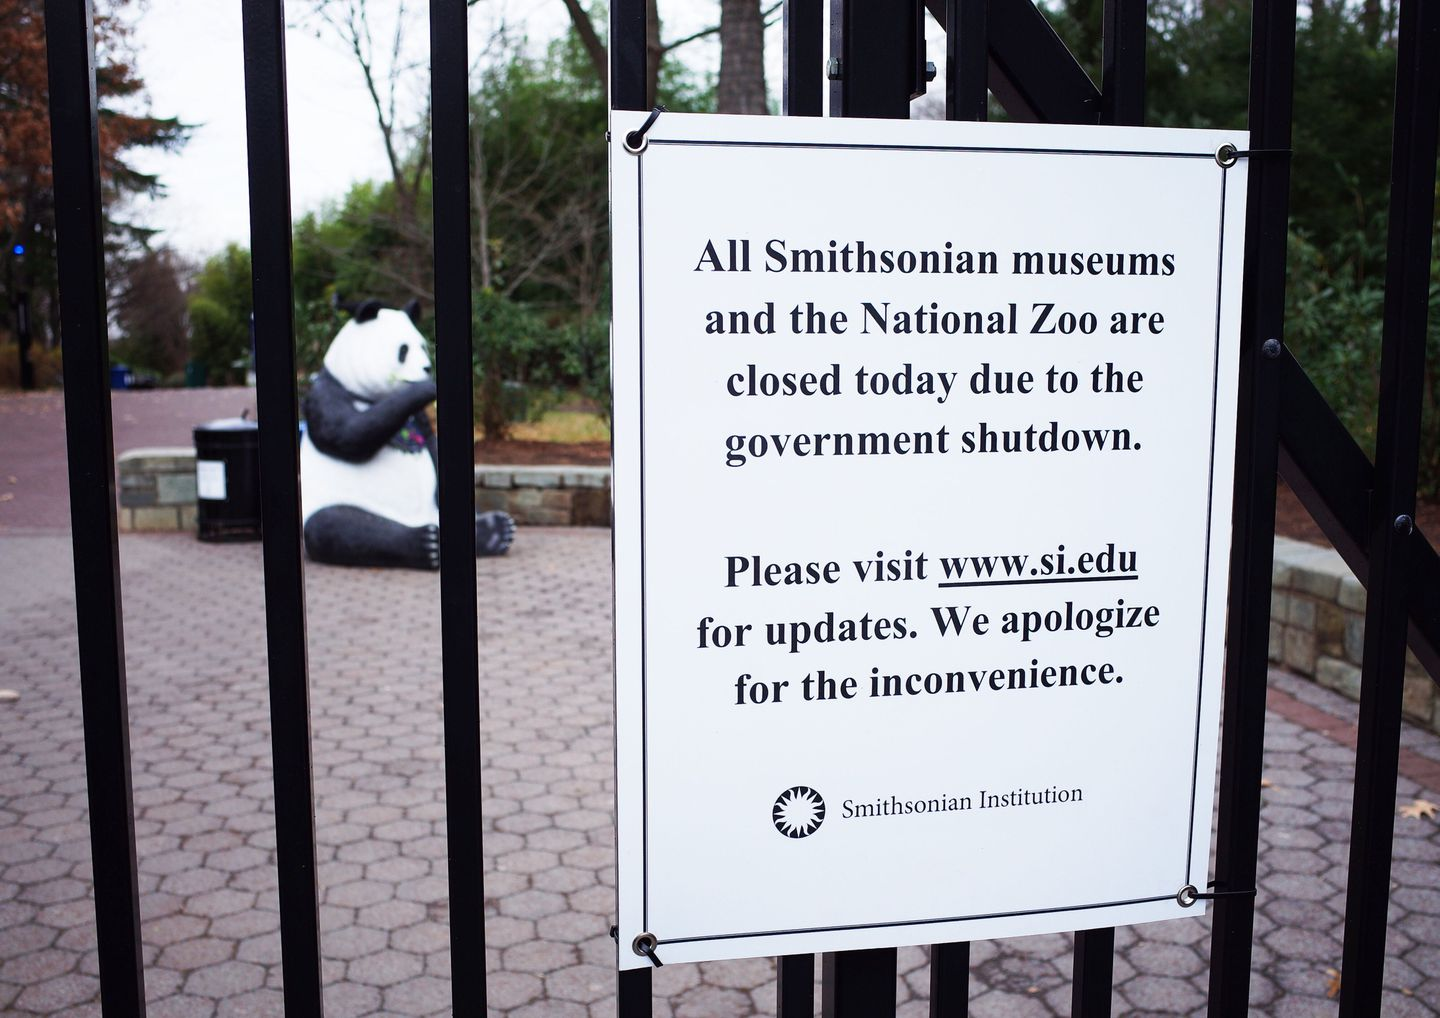 A sign on the main gate of the Smithsonian's National Zoo announced the Zoo will be closed during the shutdown.